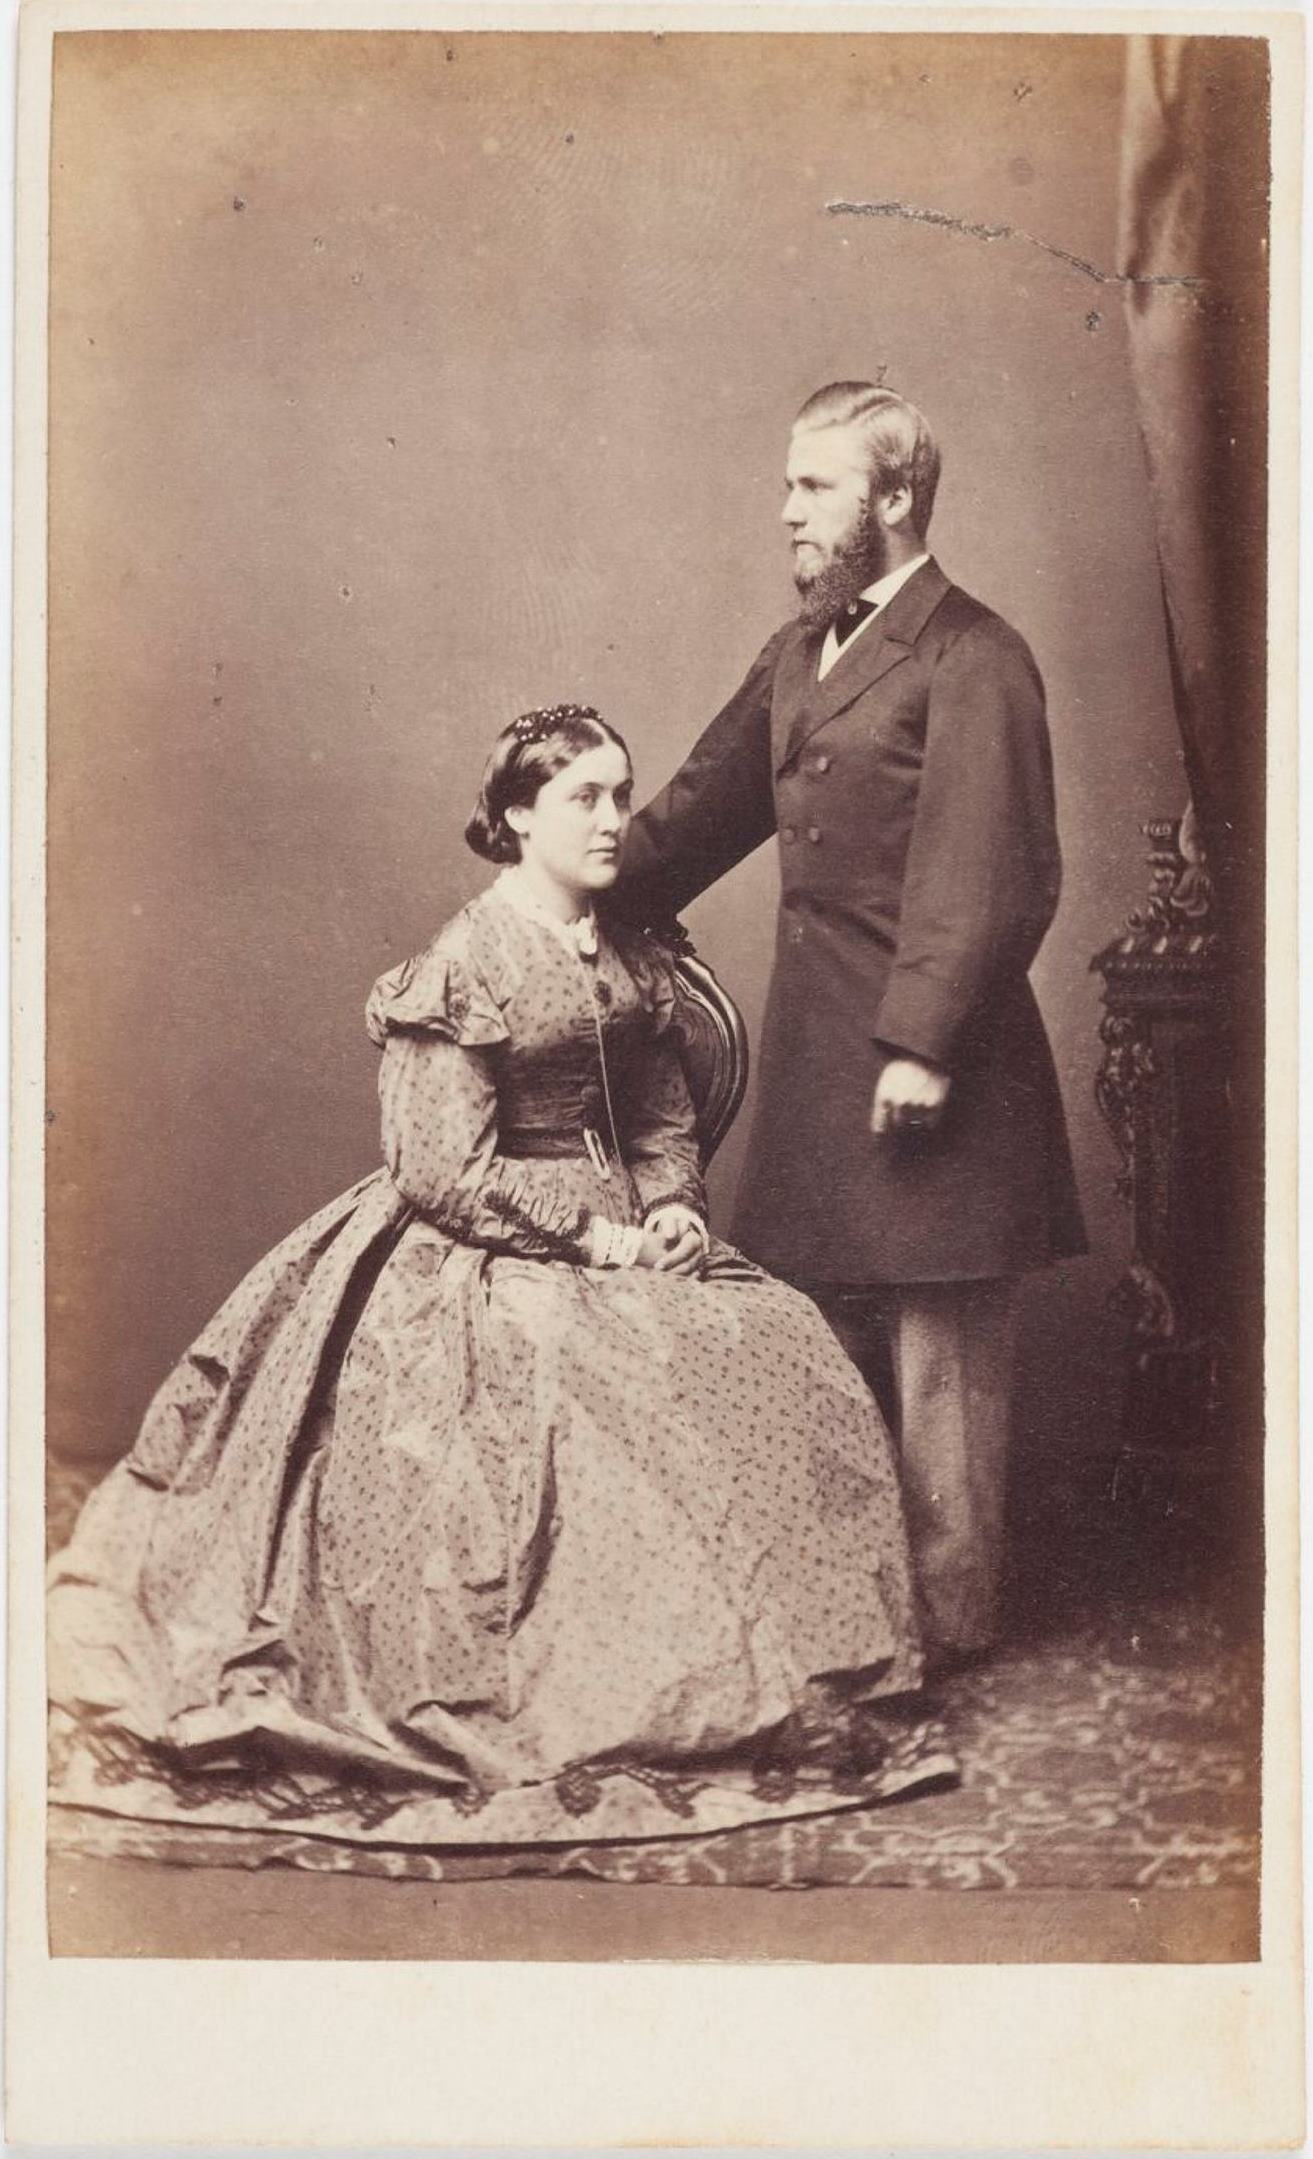 IsabelTerry, nee Benson (1845-1918), and her husband Edward Terry (1840-1907), 1866 / Dalton's Royal Photographic Gallery, Sydney